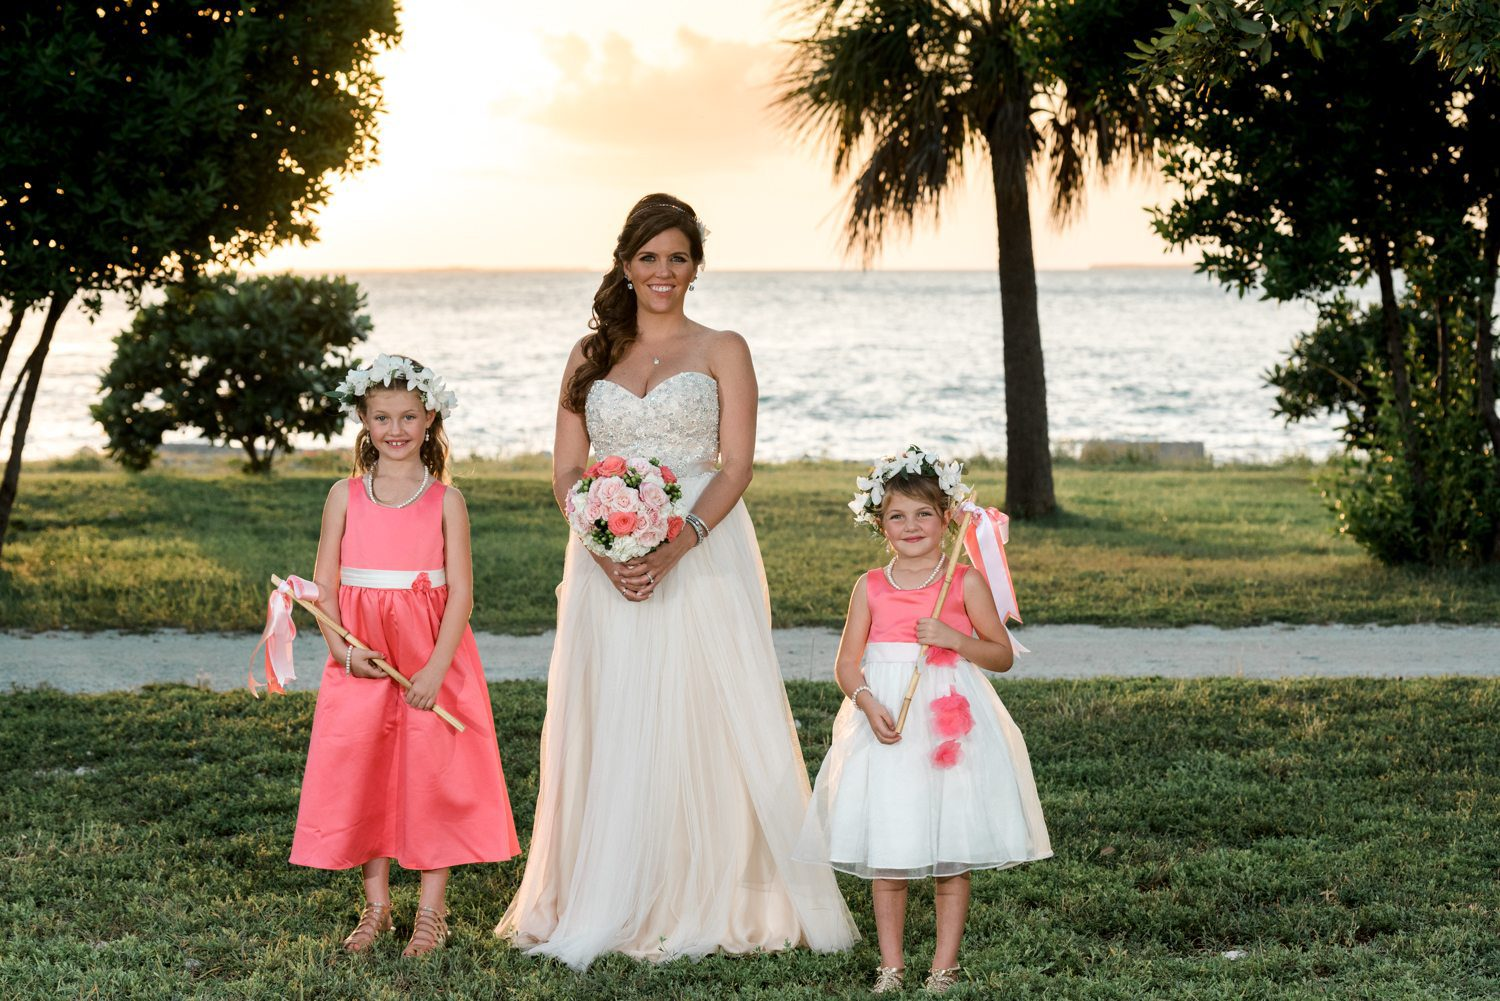 Erin Colin Fort Zachary Taylor Rooftop Cafe Key West Wedding Photographer 47 - Erin & Colin   Key West Wedding Photographer   Fort Zachary Taylor